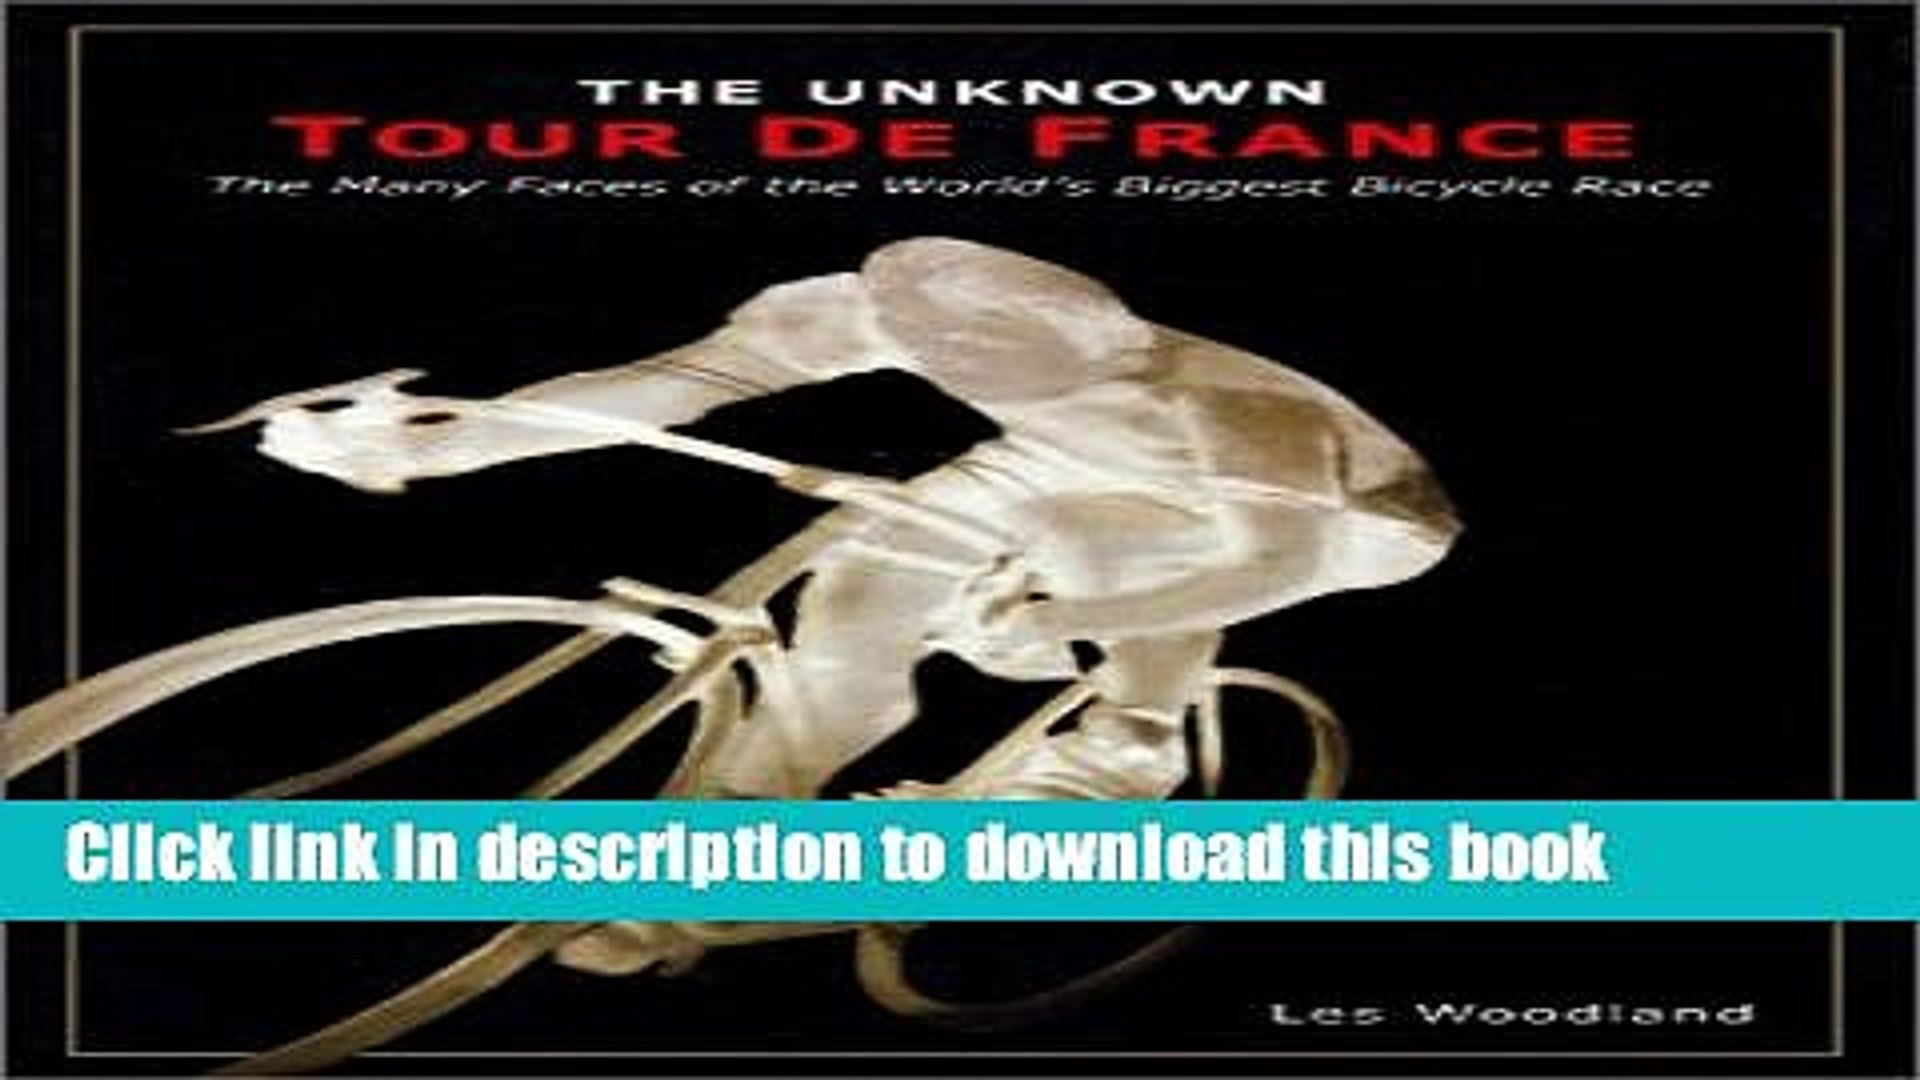 [Popular Books] The Unknown Tour de France: The Many Faces of the World s Greatest Bicycle Race